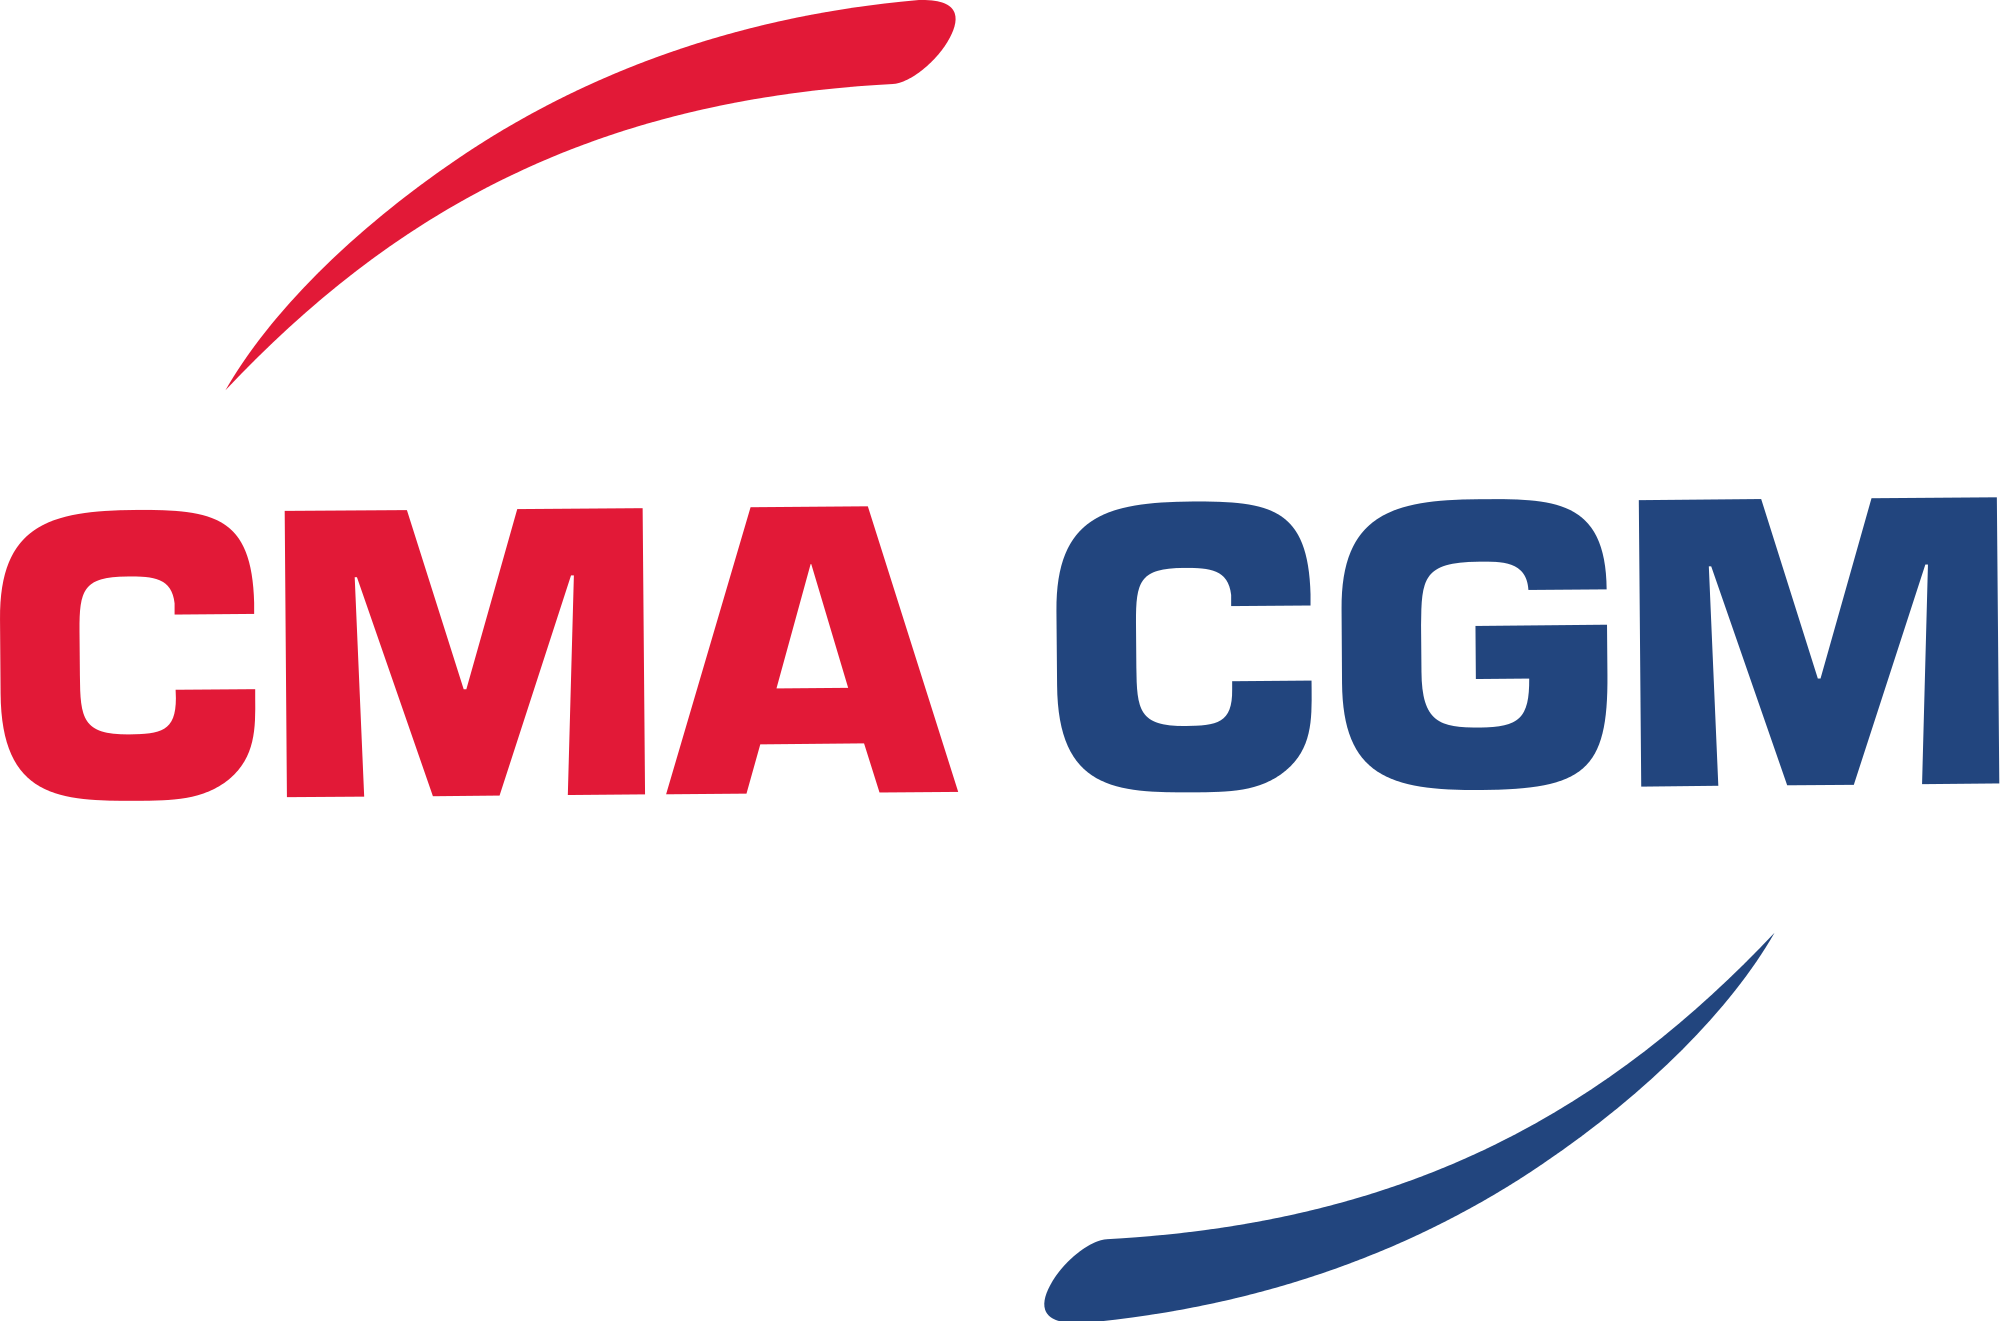 CMA CGM Group: BizLibrary Client of the Month.